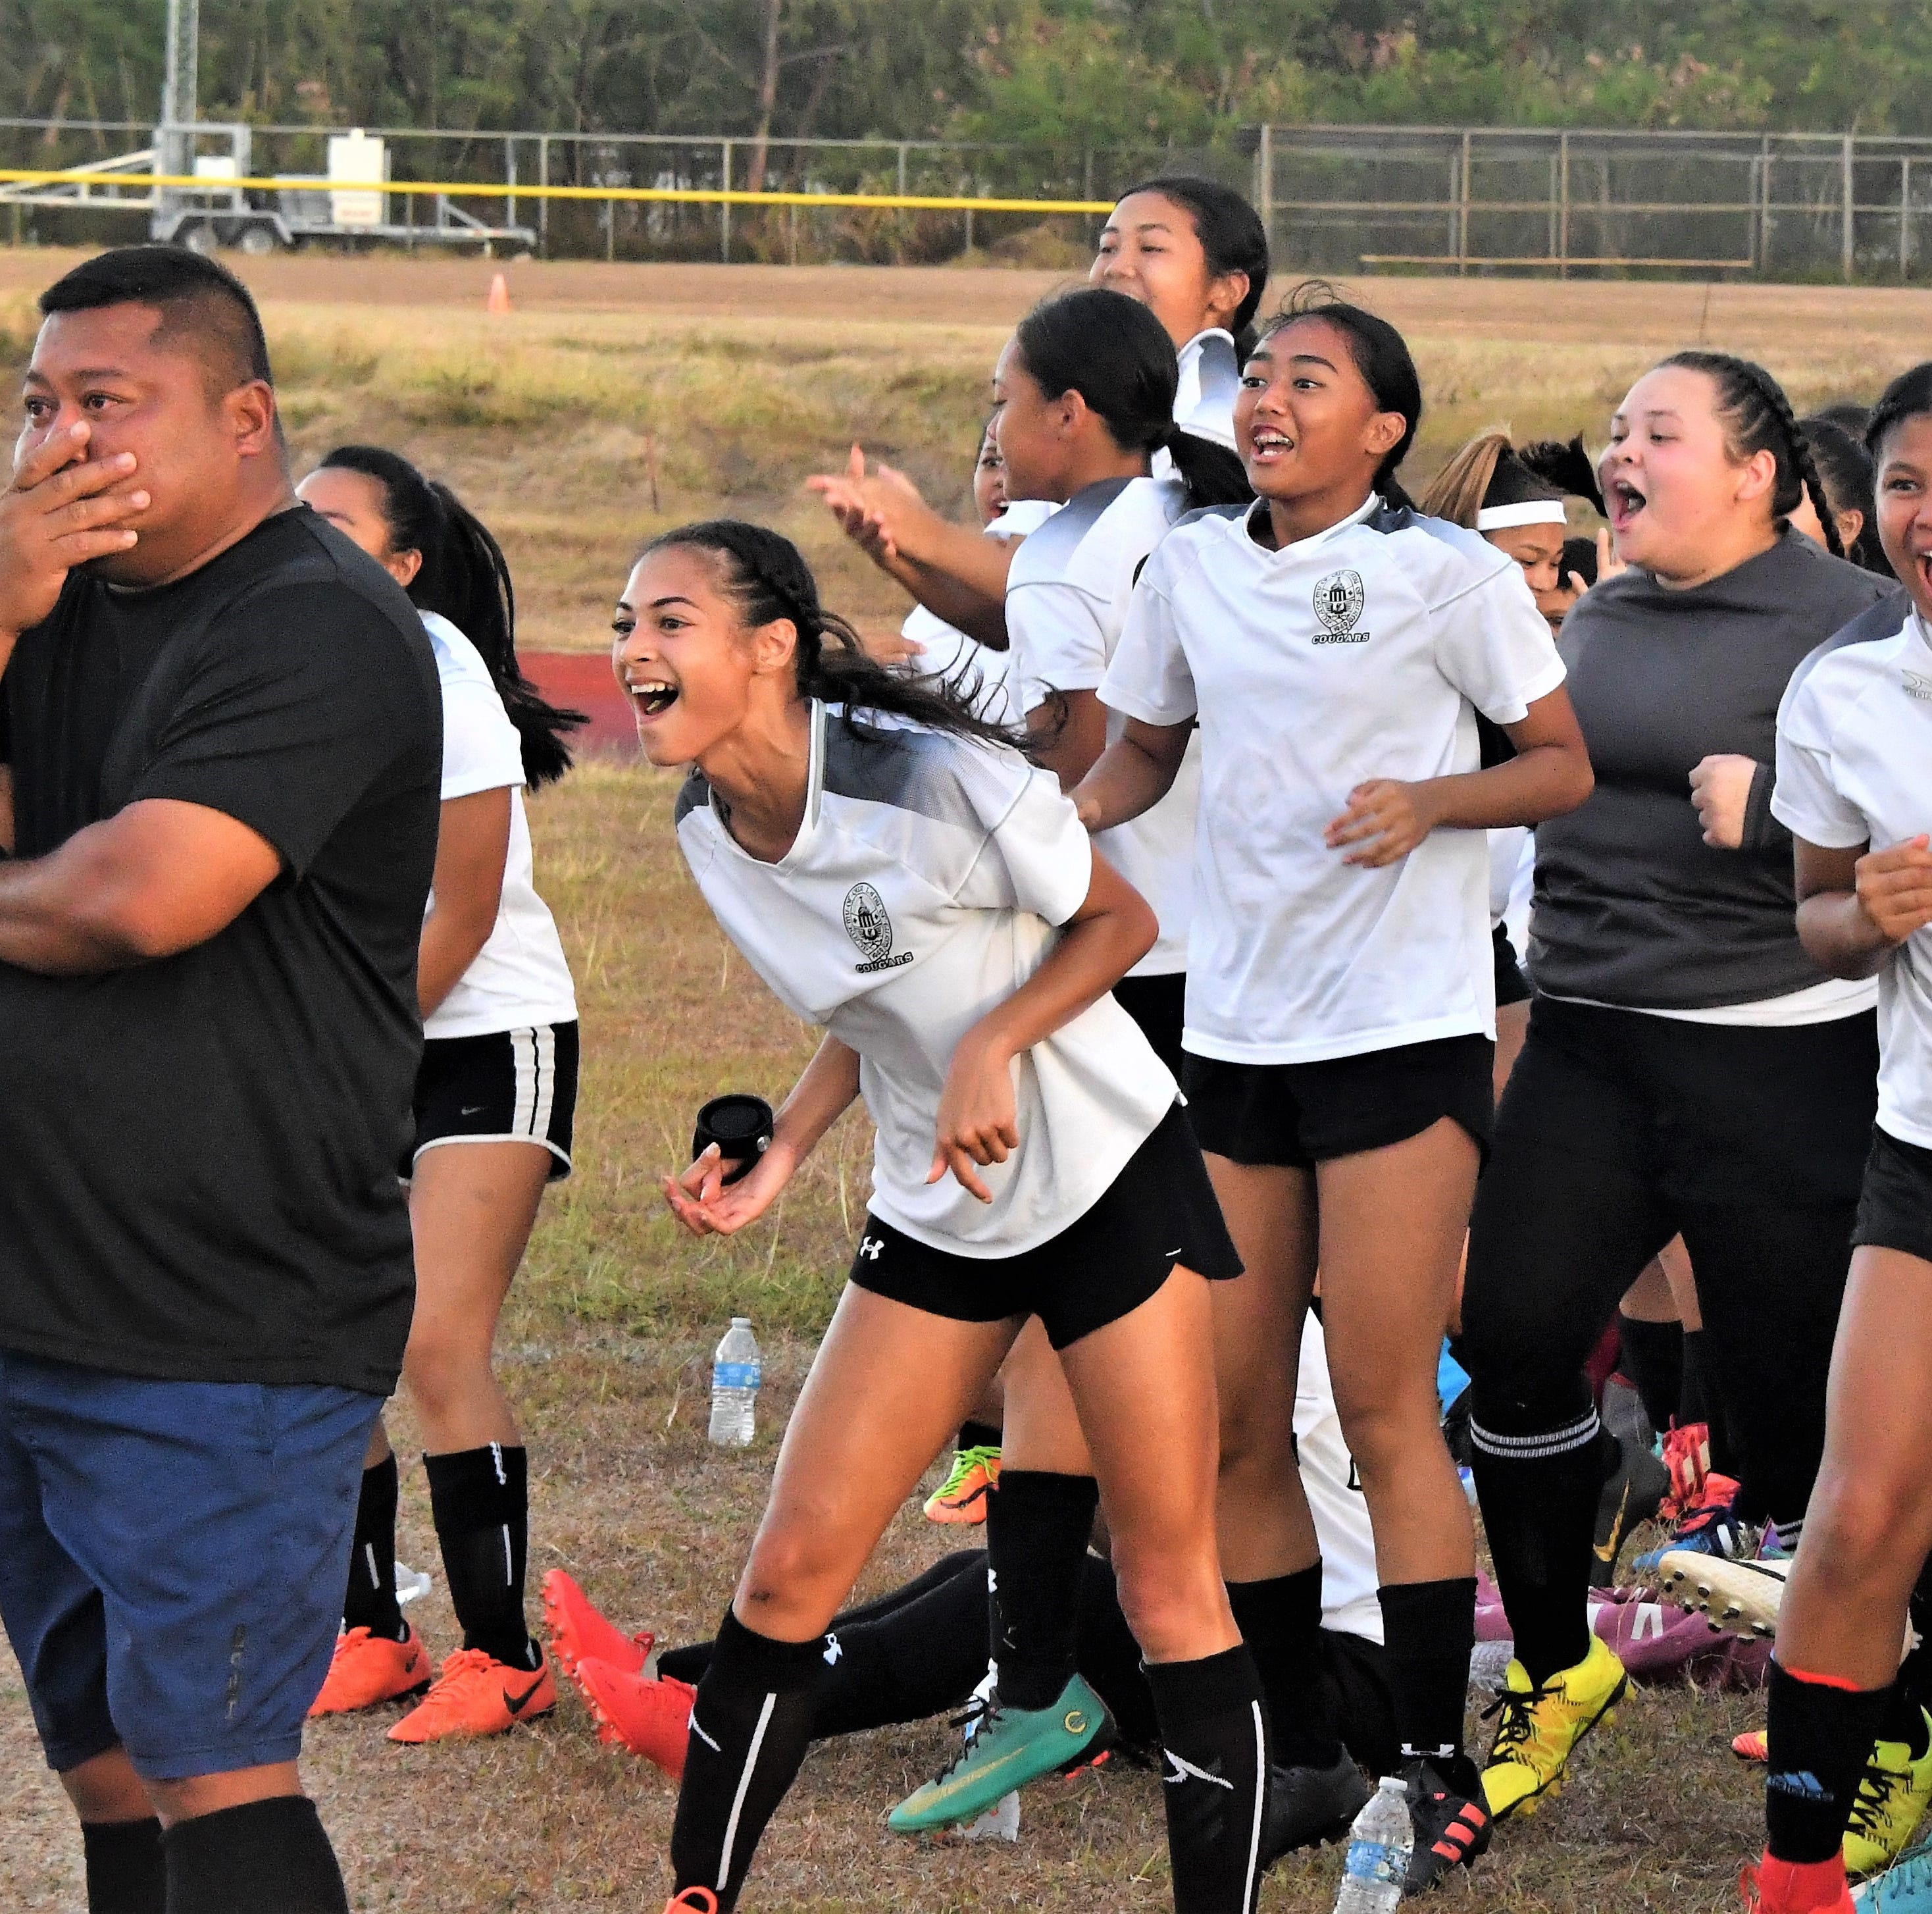 Academy Cougars headed to Girls Soccer title match